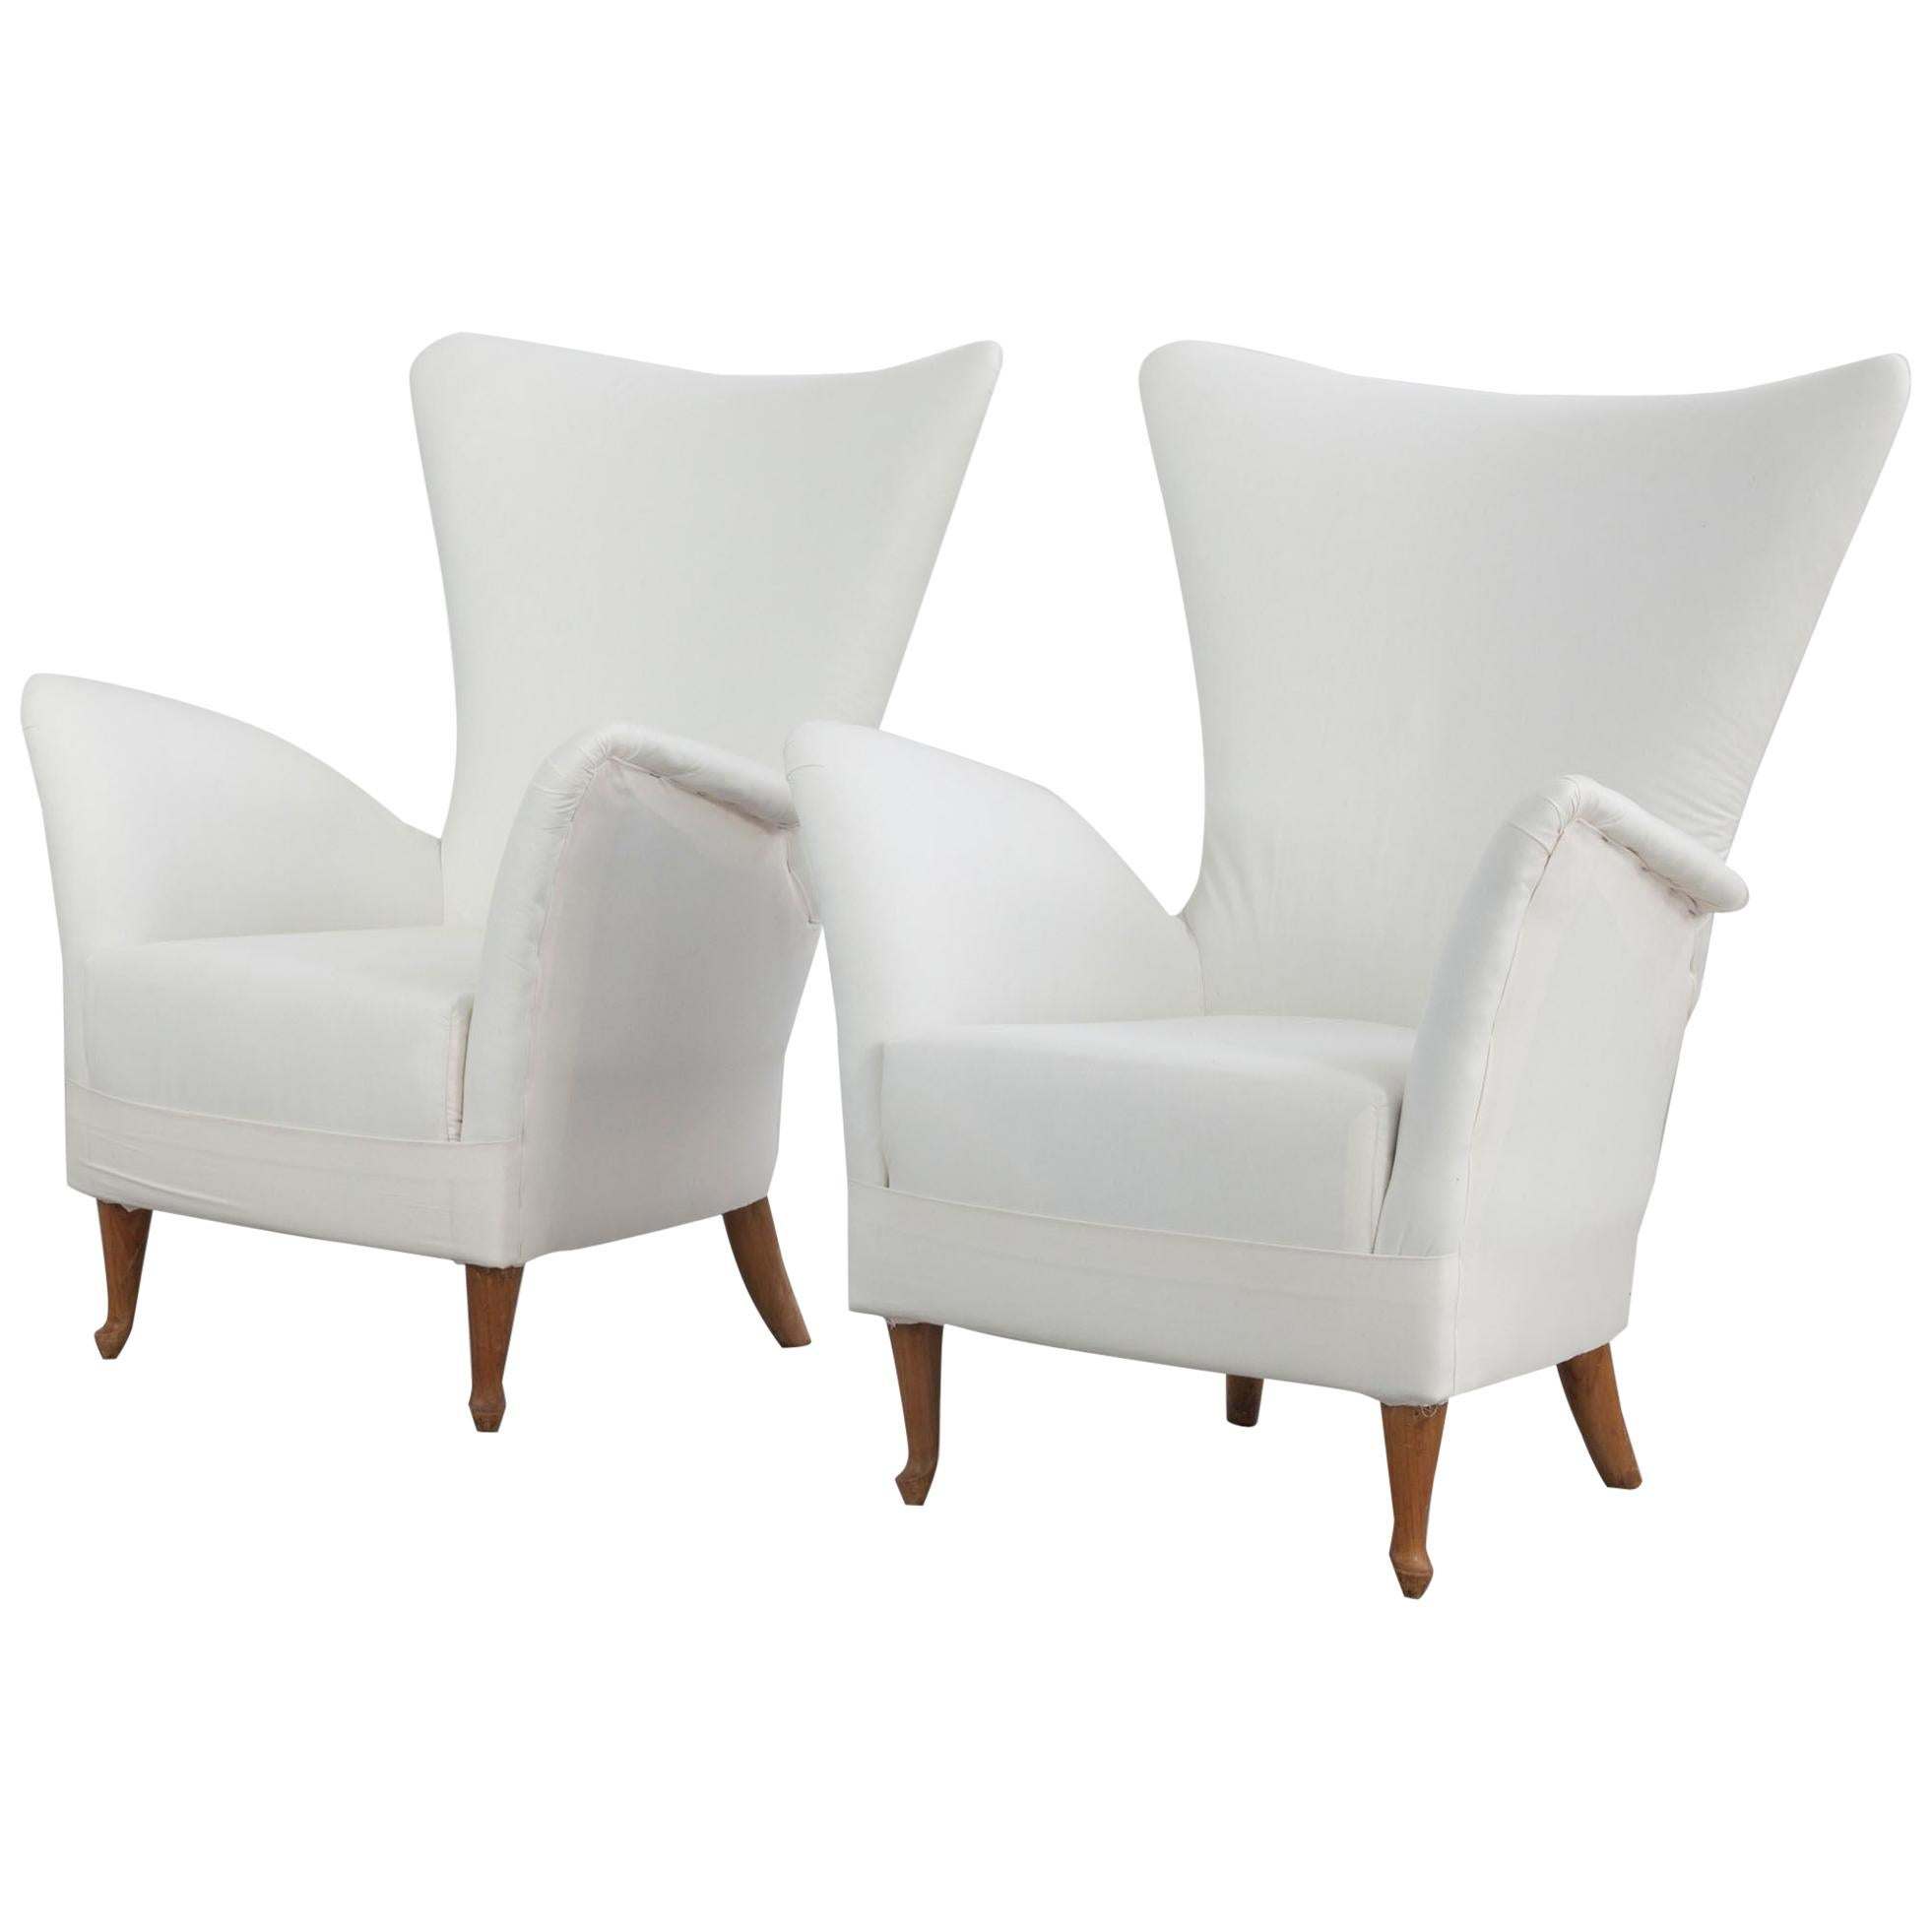 Set of Two Italian Ponti Stile Armchairs from Italy, 1950s